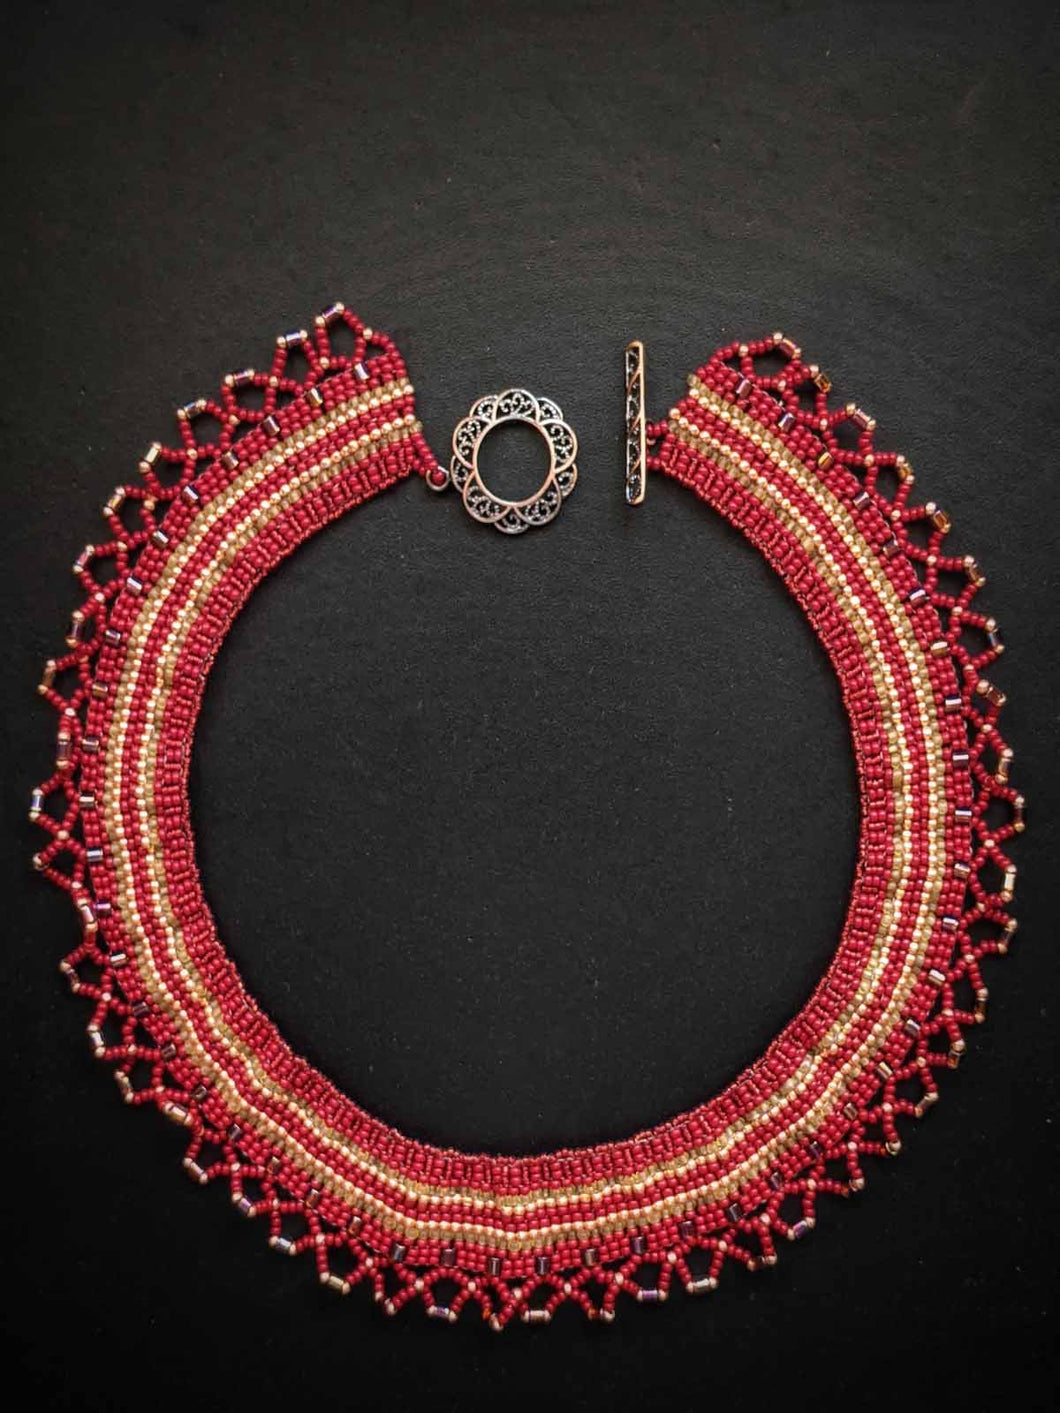 Handmade Beaded Necklace - Red & Gold Woven Collar